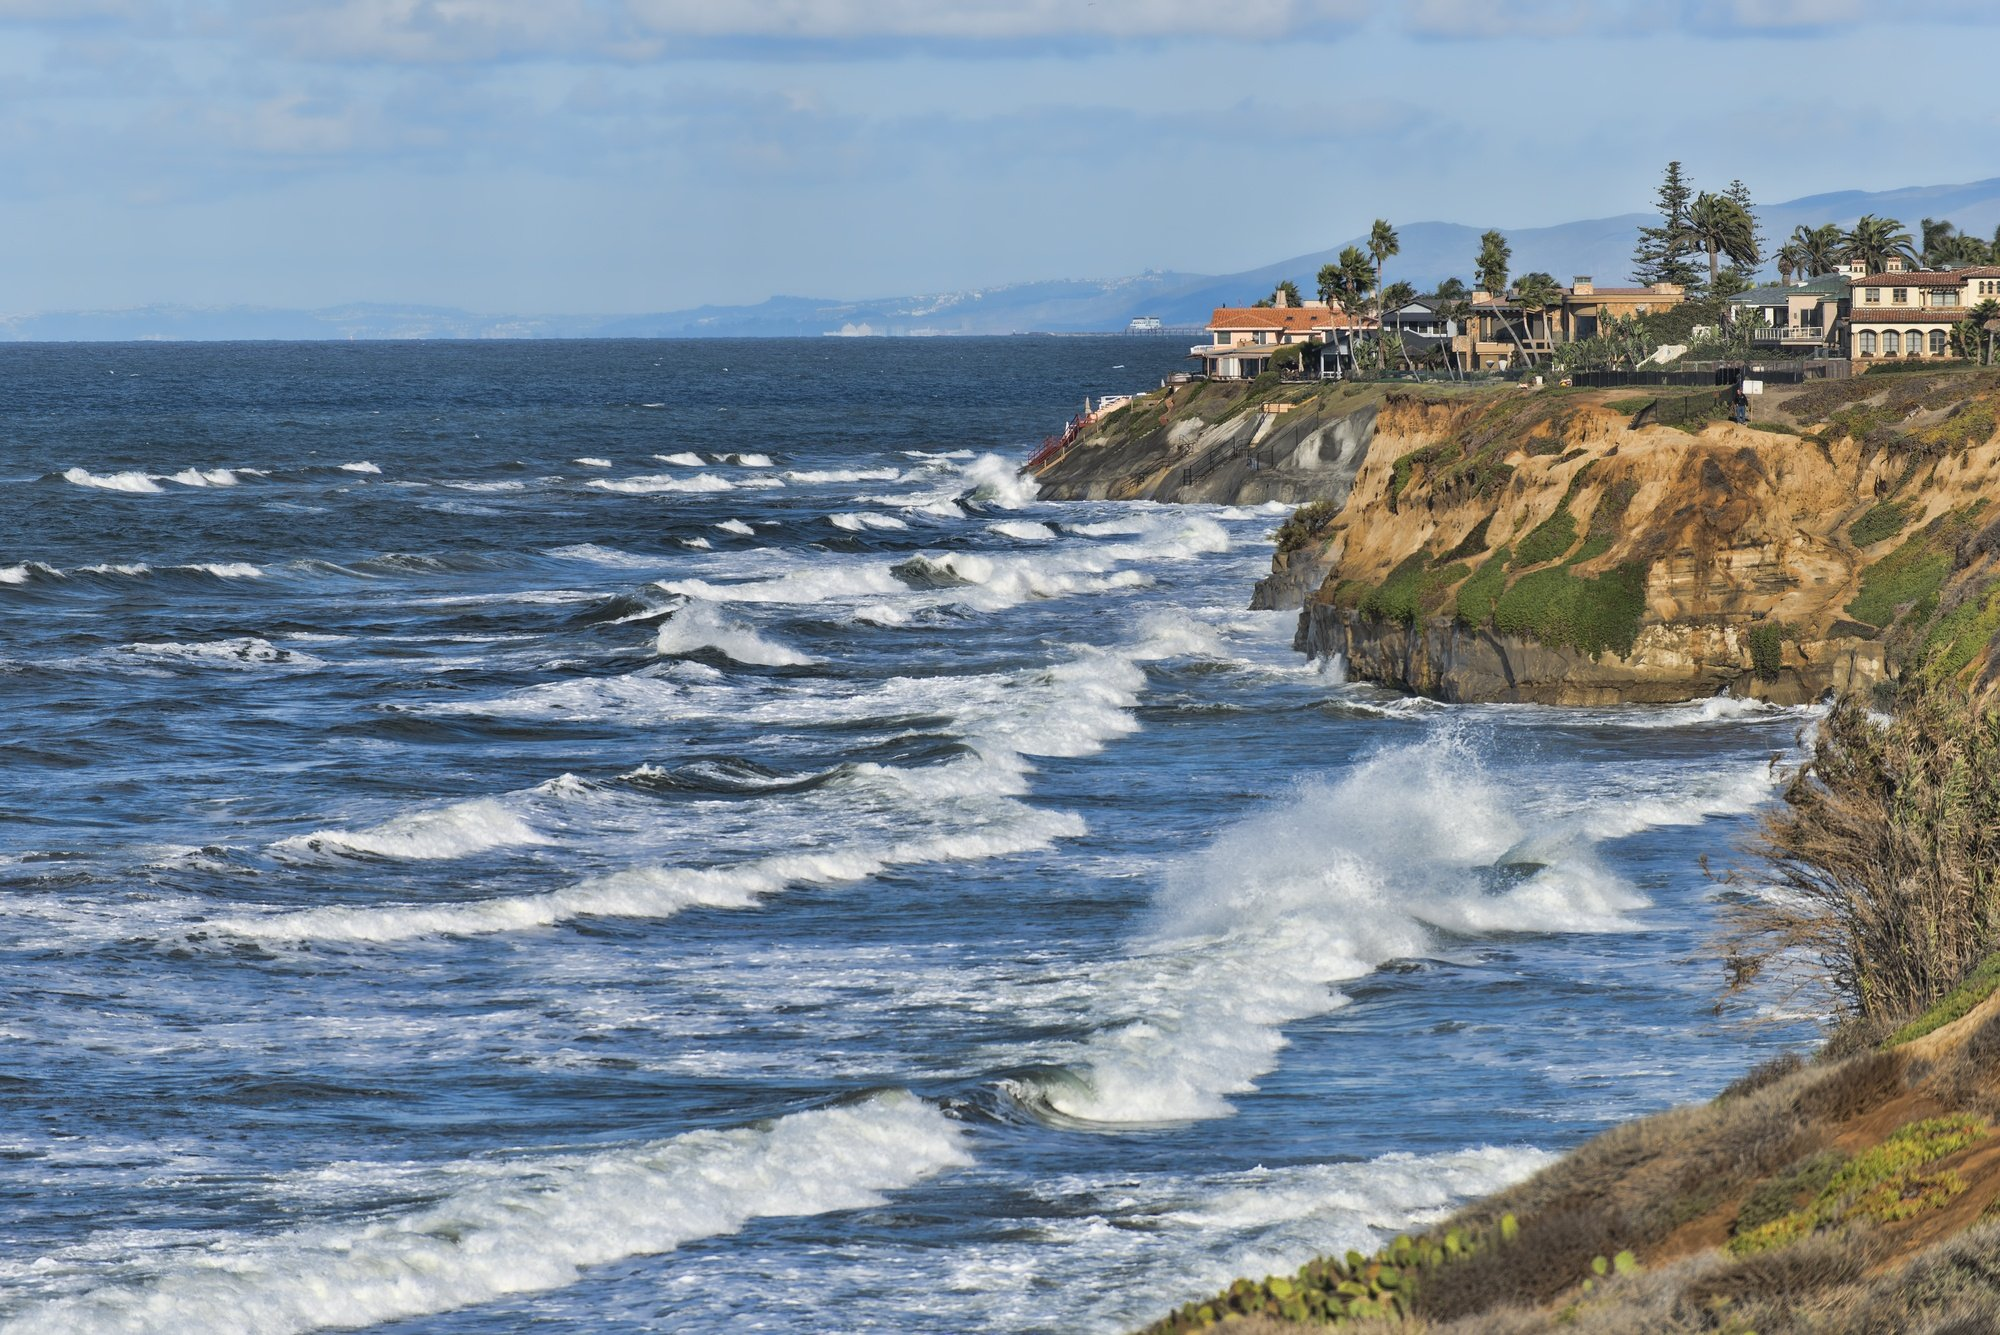 Carlsbad, California coastal view